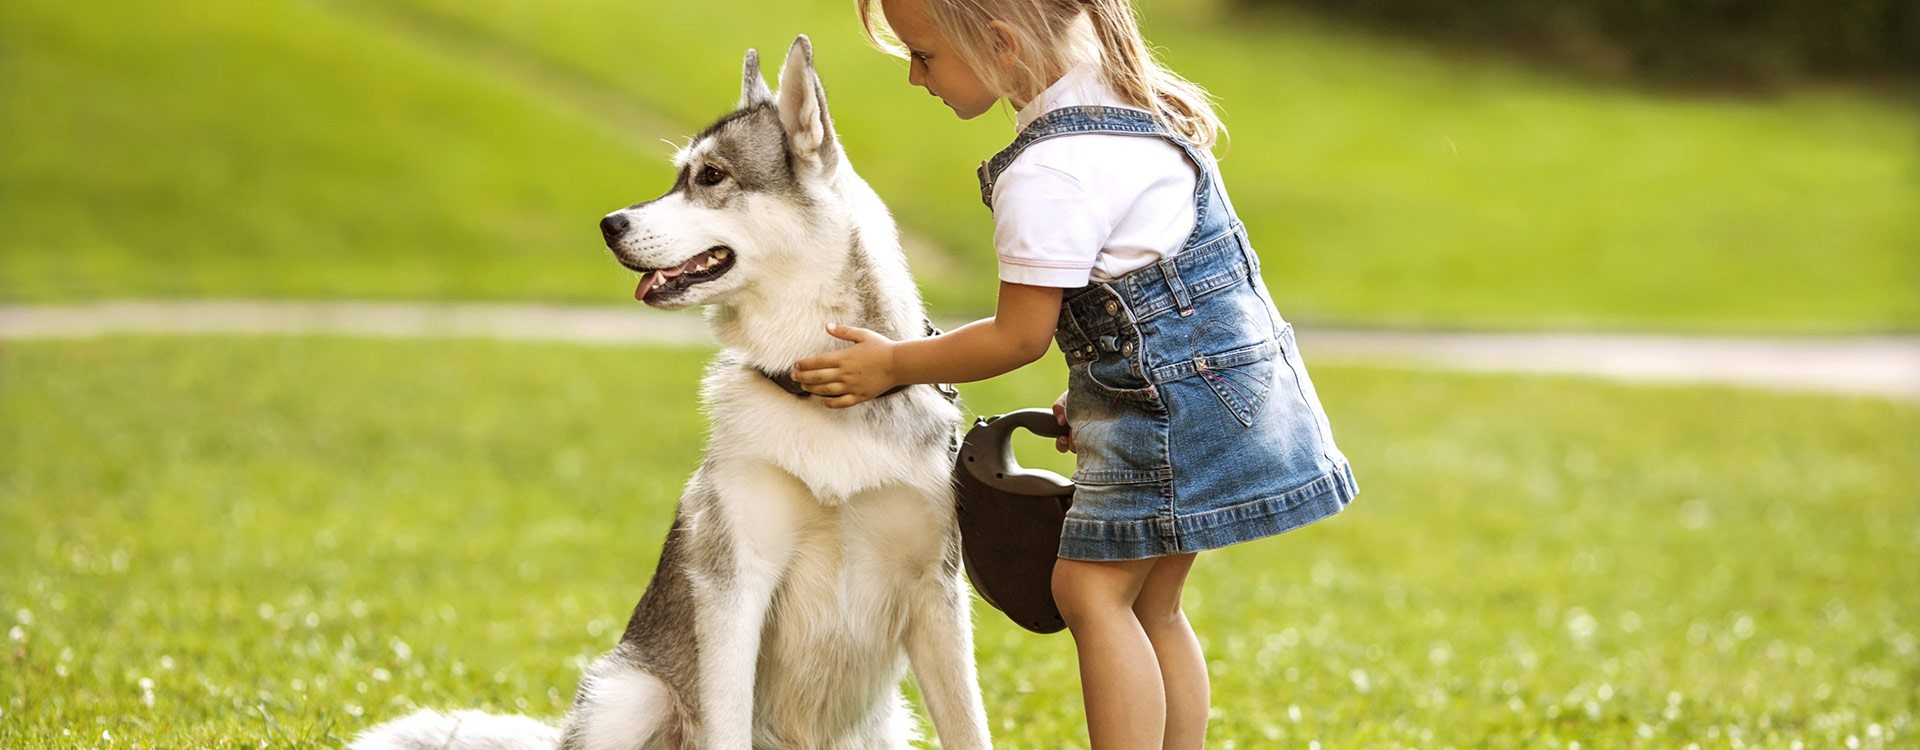 girl_with_dog_full